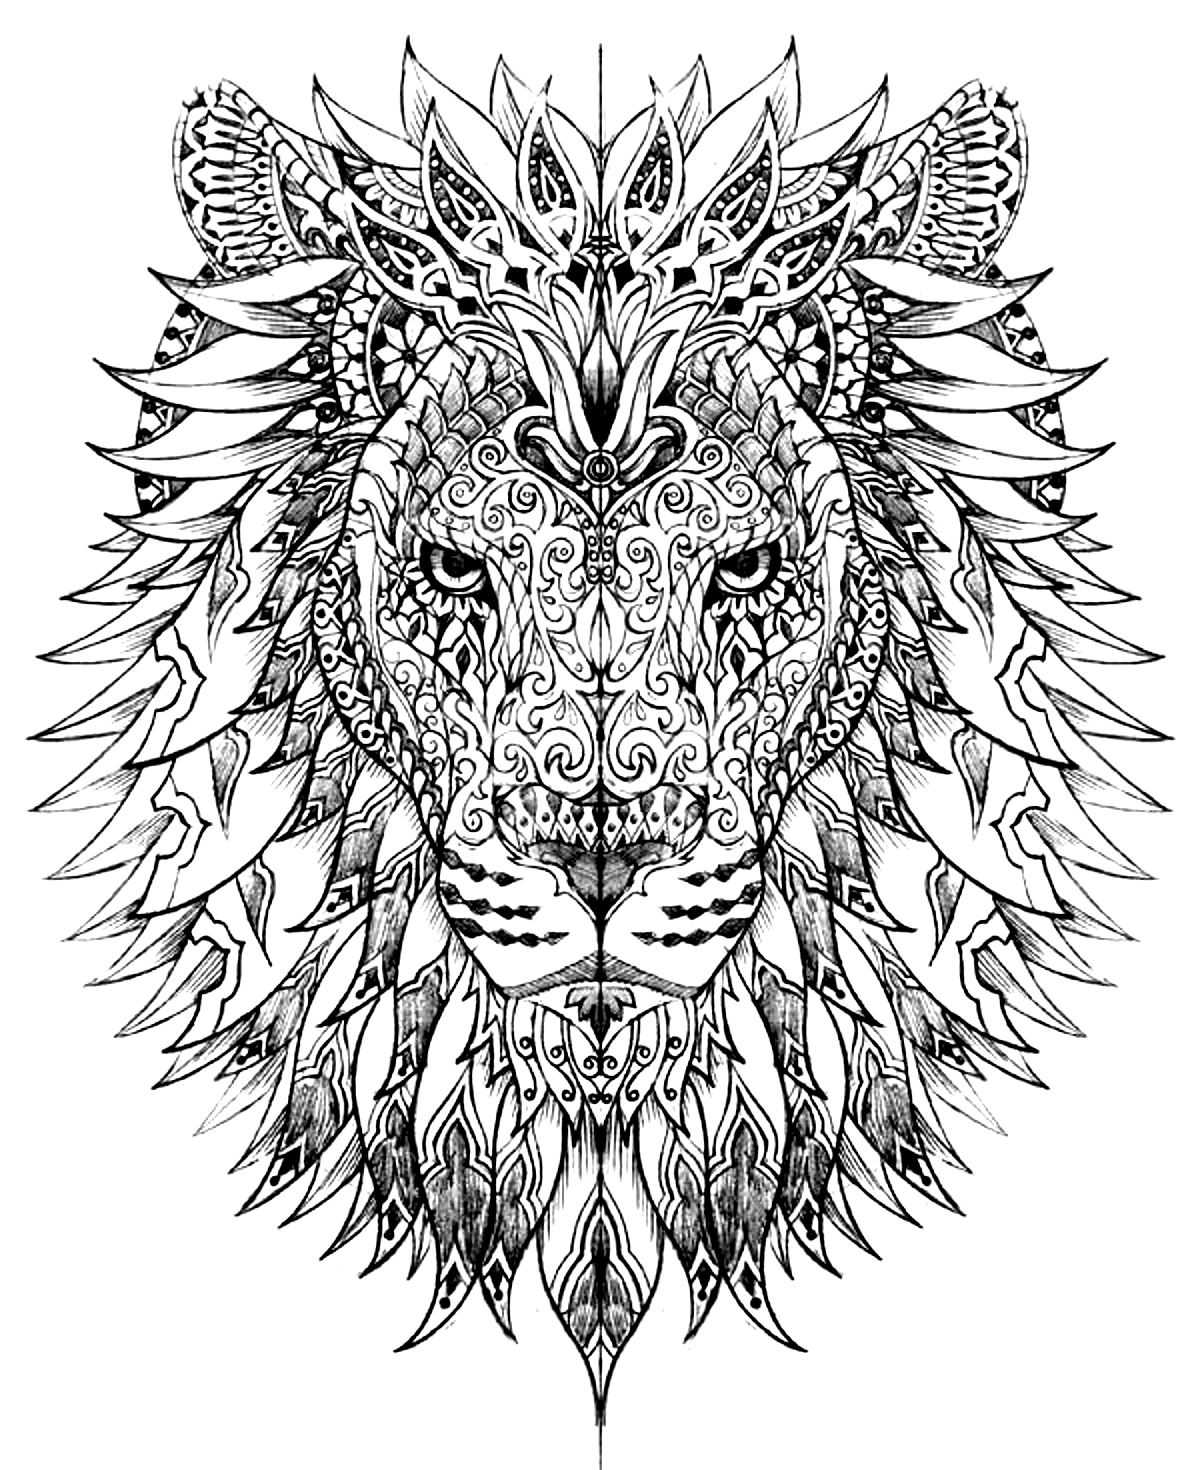 Lion head drawn with very smart and harmonious patterns